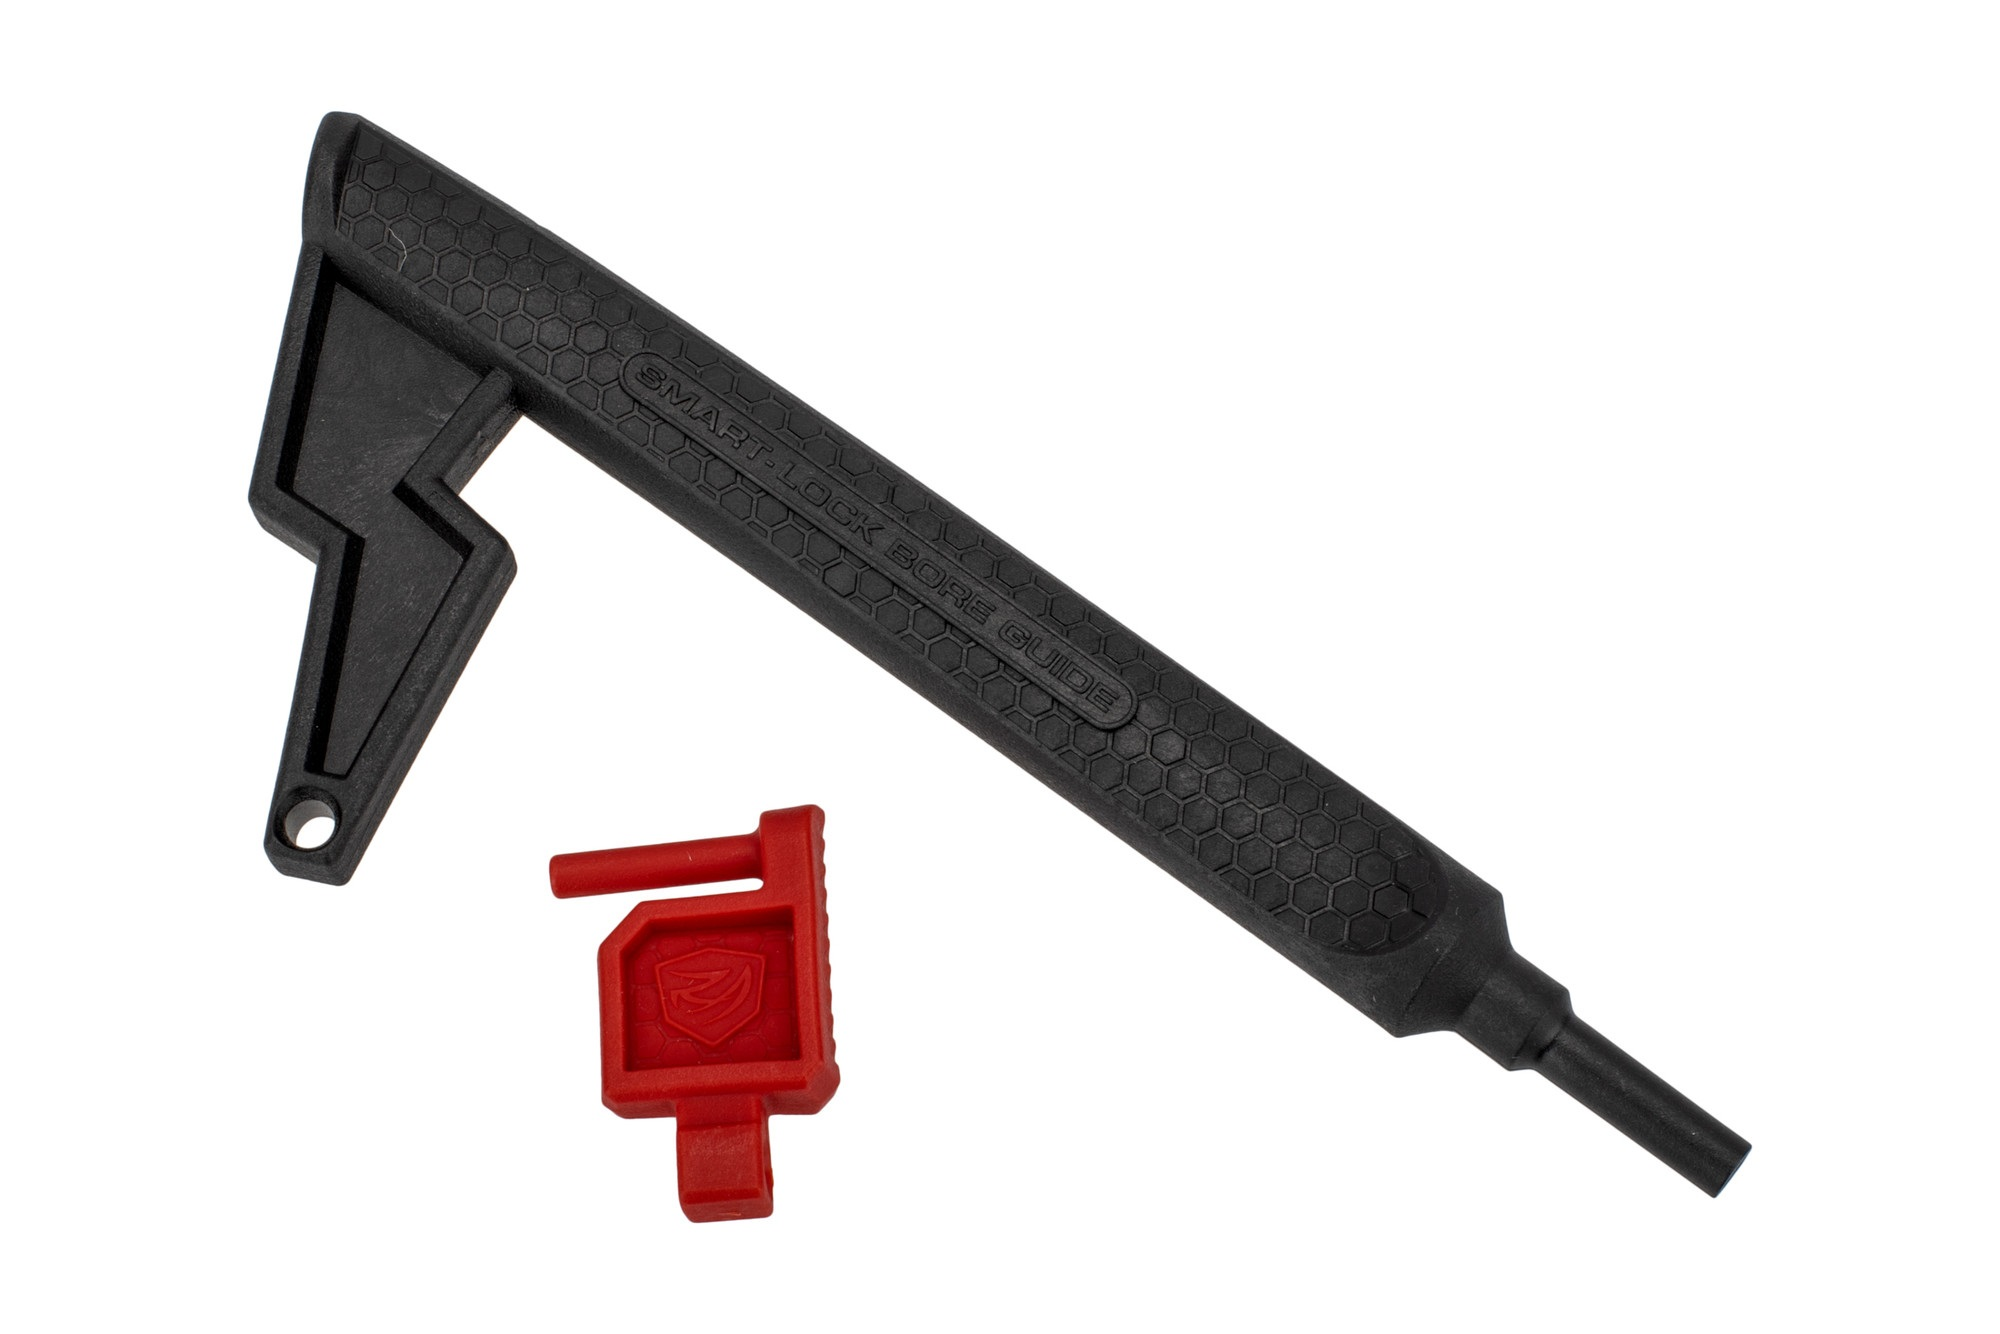 AR-15 Smart Lock Bore Guide